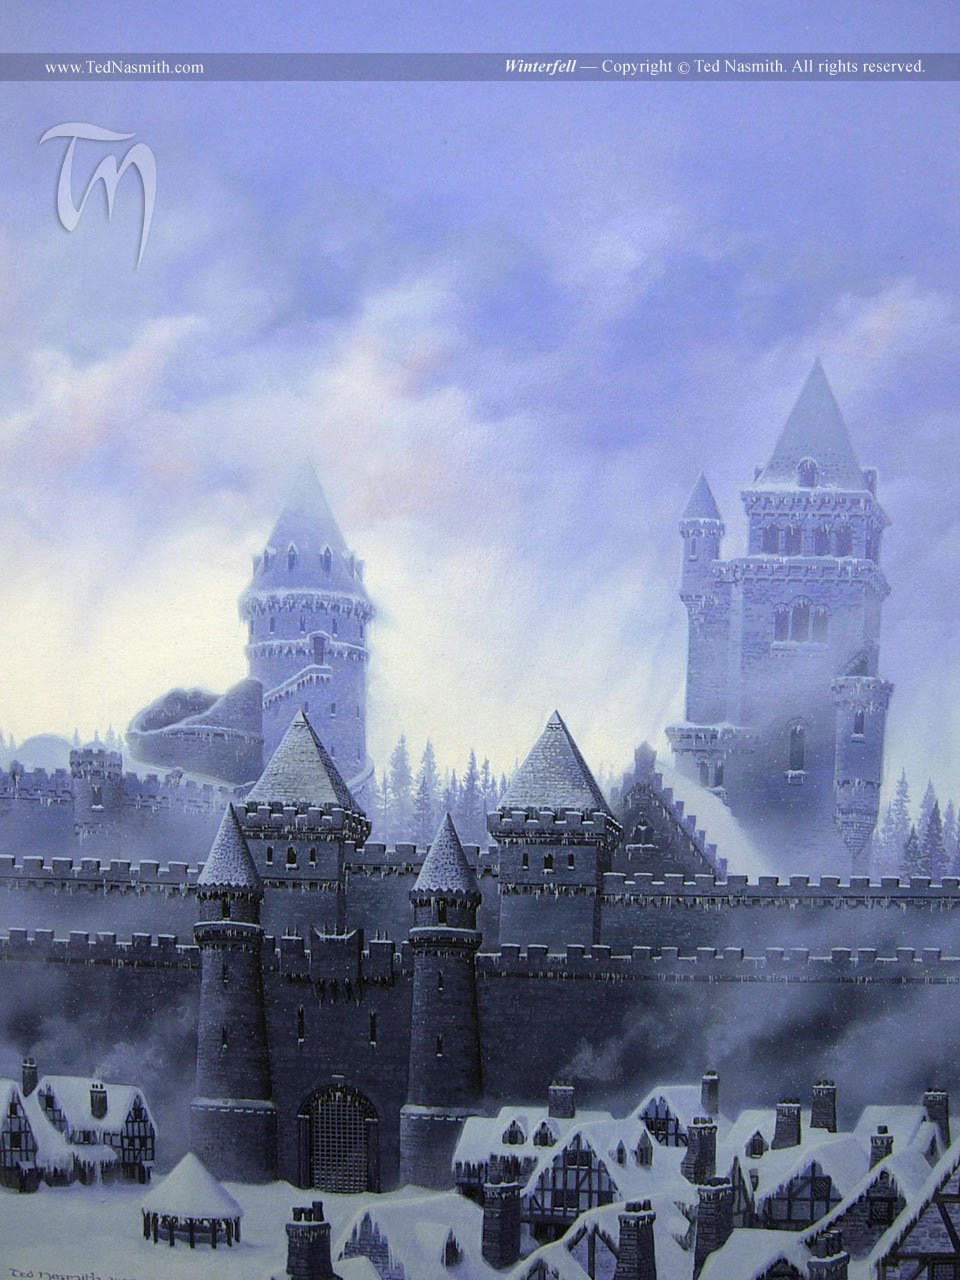 Winterfell A Wiki Of Ice And Fire